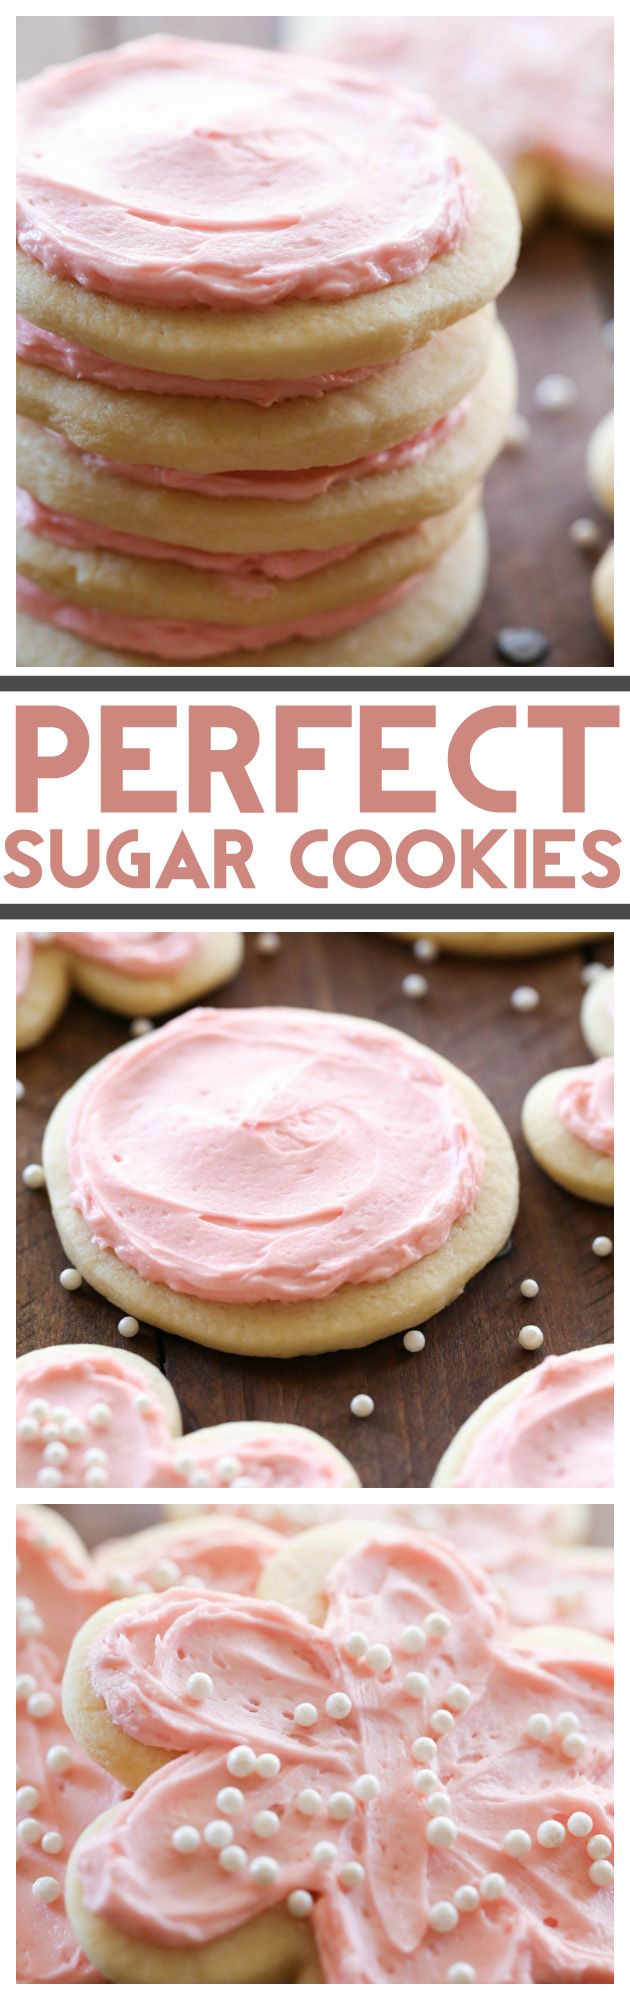 asics gel noosa tri 8 womens shoes stormlightmint Perfect Sugar Cookies    These really are perfect  Both soft and crisp and the the flavor is wonderful  Paired with an incredible frosting  this will quickly become your go to sugar cookie recipe